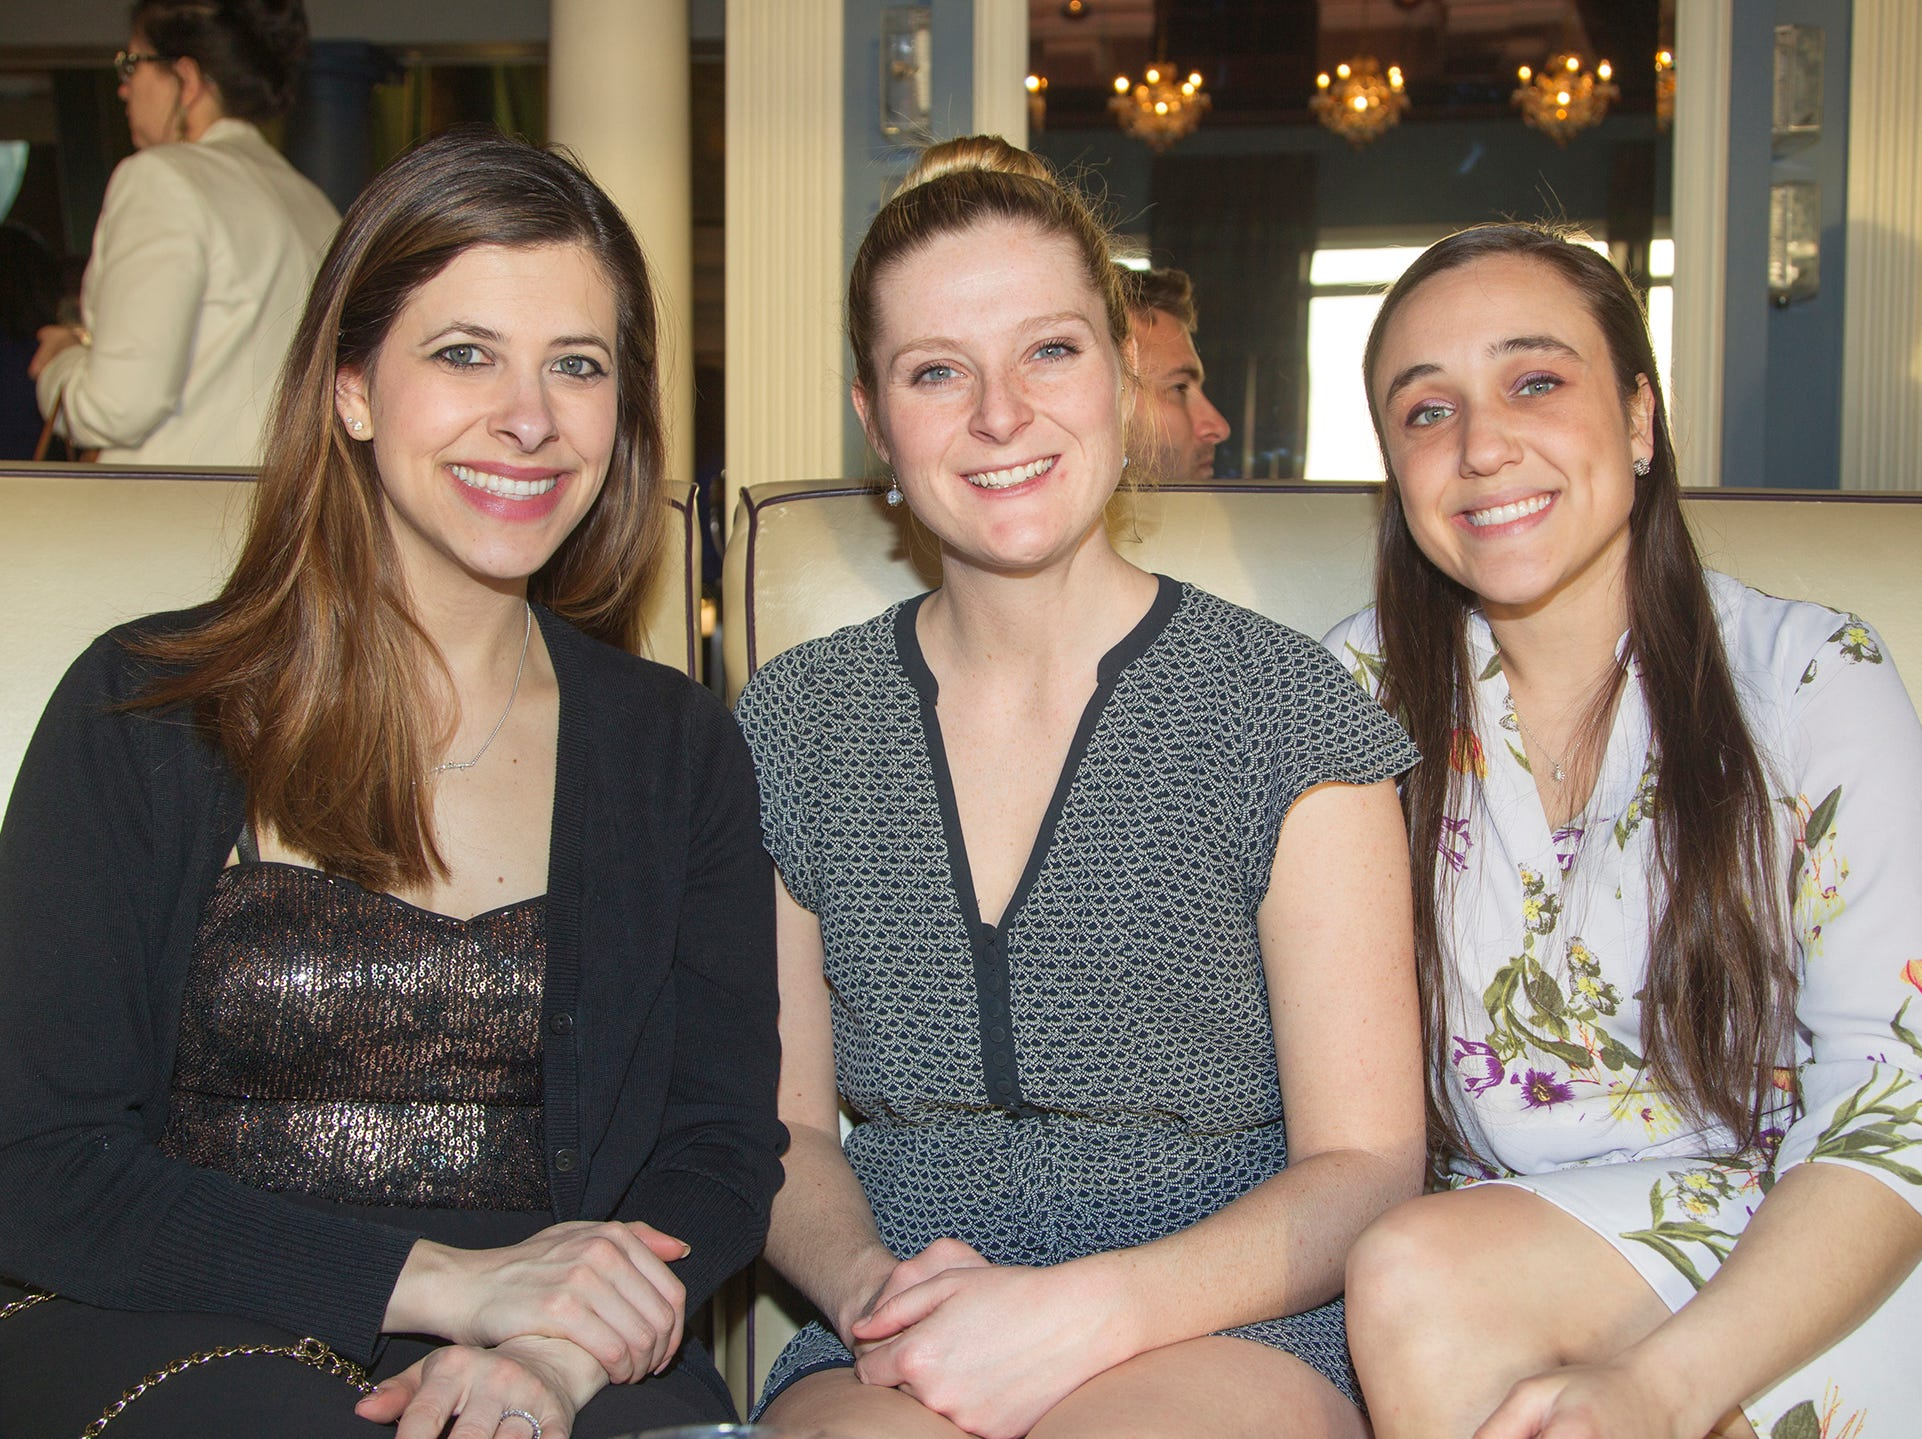 Natalie Grillett, Megan Soutis, Stephanie Sass. Girl Scouts of Northern New Jersey held its Women of Achievement 2019 at Westmount Country Club in Woodland Park. 04/04/2019